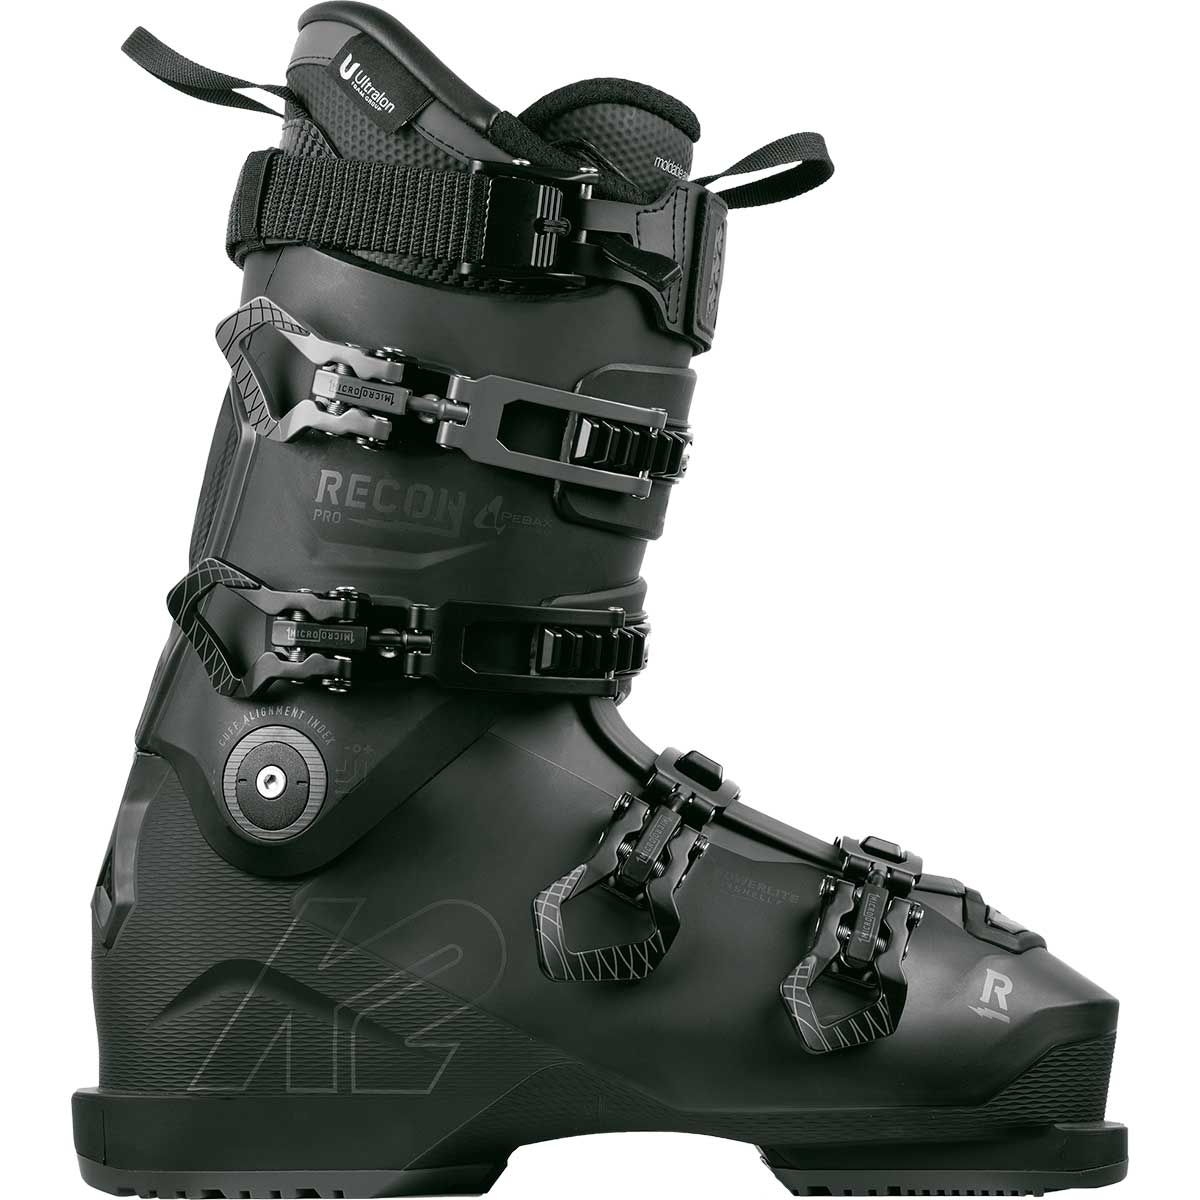 K2 Recon Pro Boot - Men's